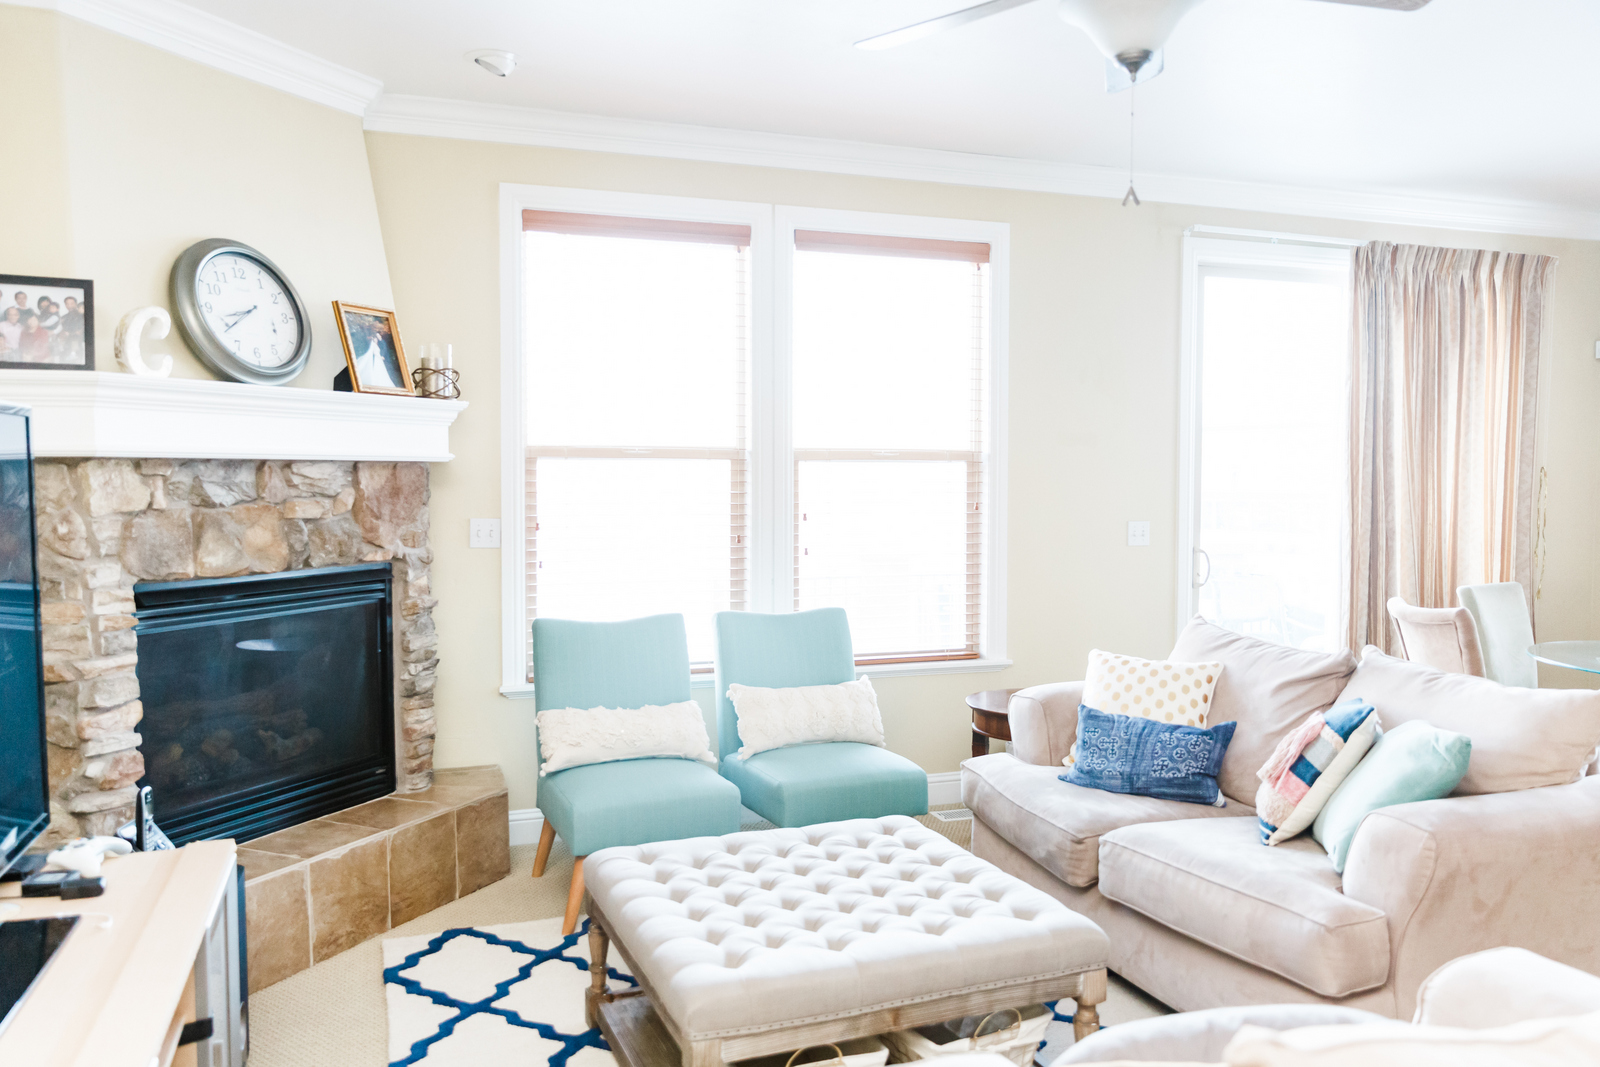 Living Room Update with Kohl's Accent Chairs